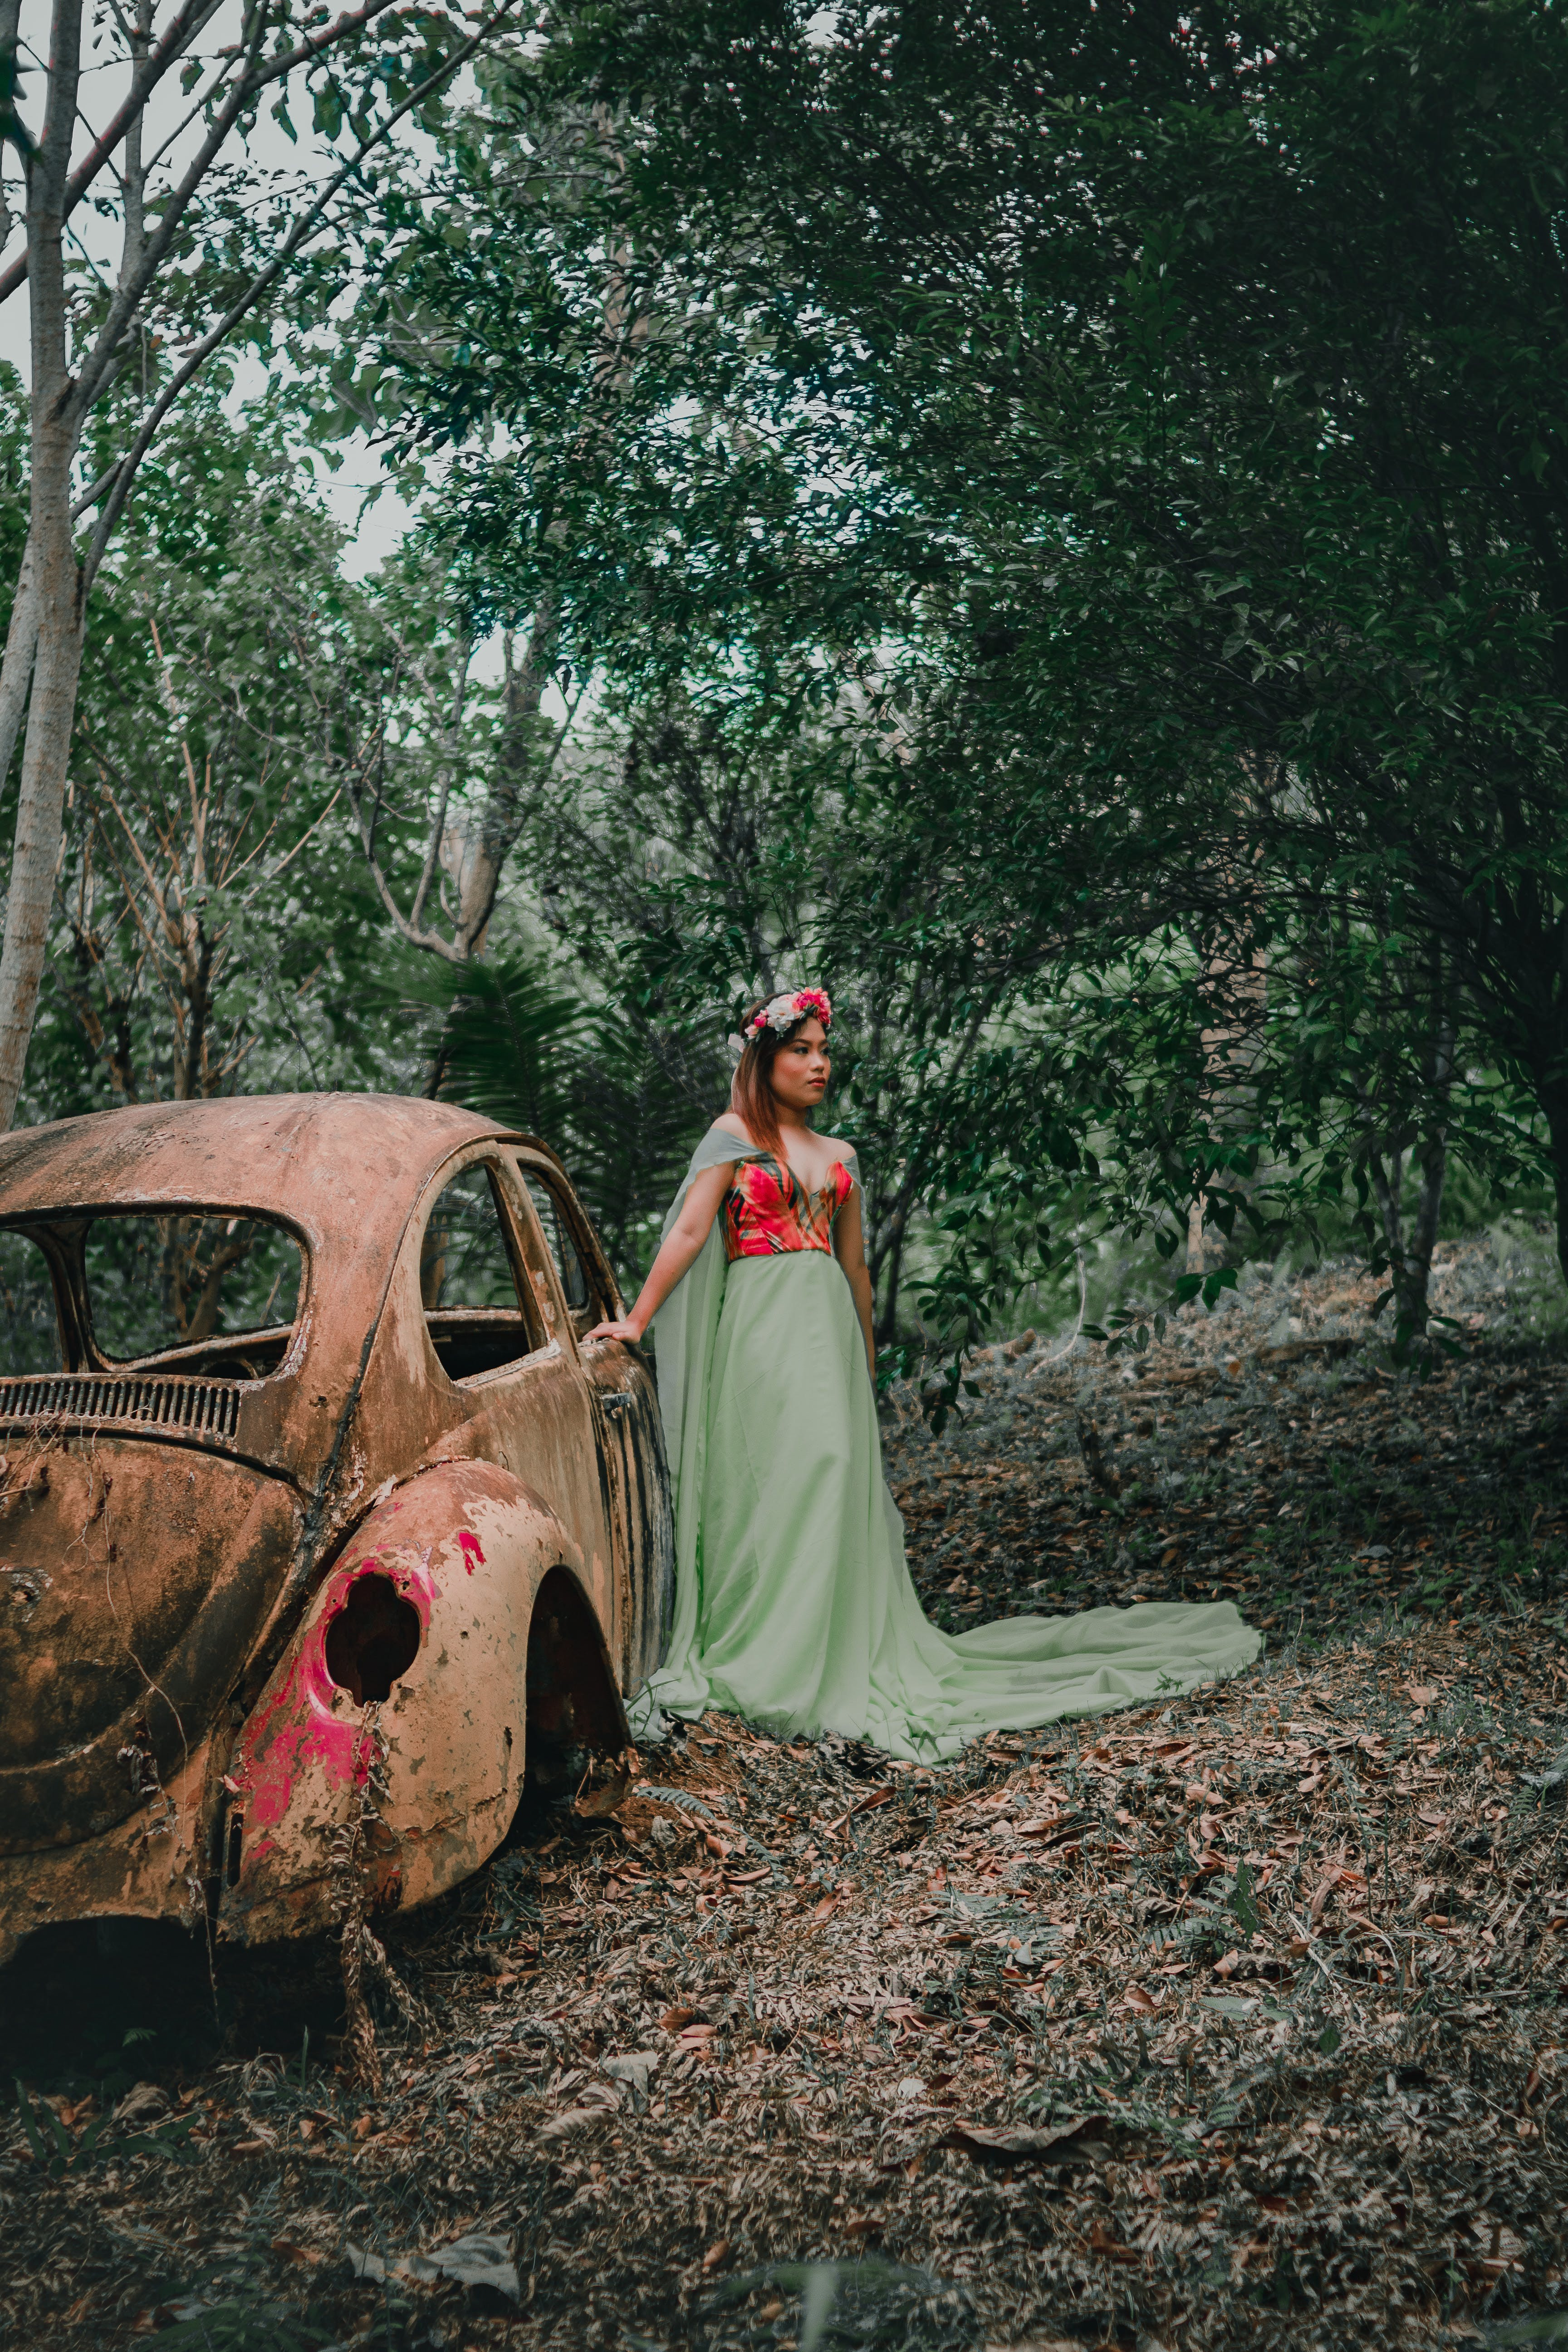 Woman Wearing Green and Red Dress Standing Beside Rusted Brown Volkswagen Beetle Coupe Surrounded by Trees